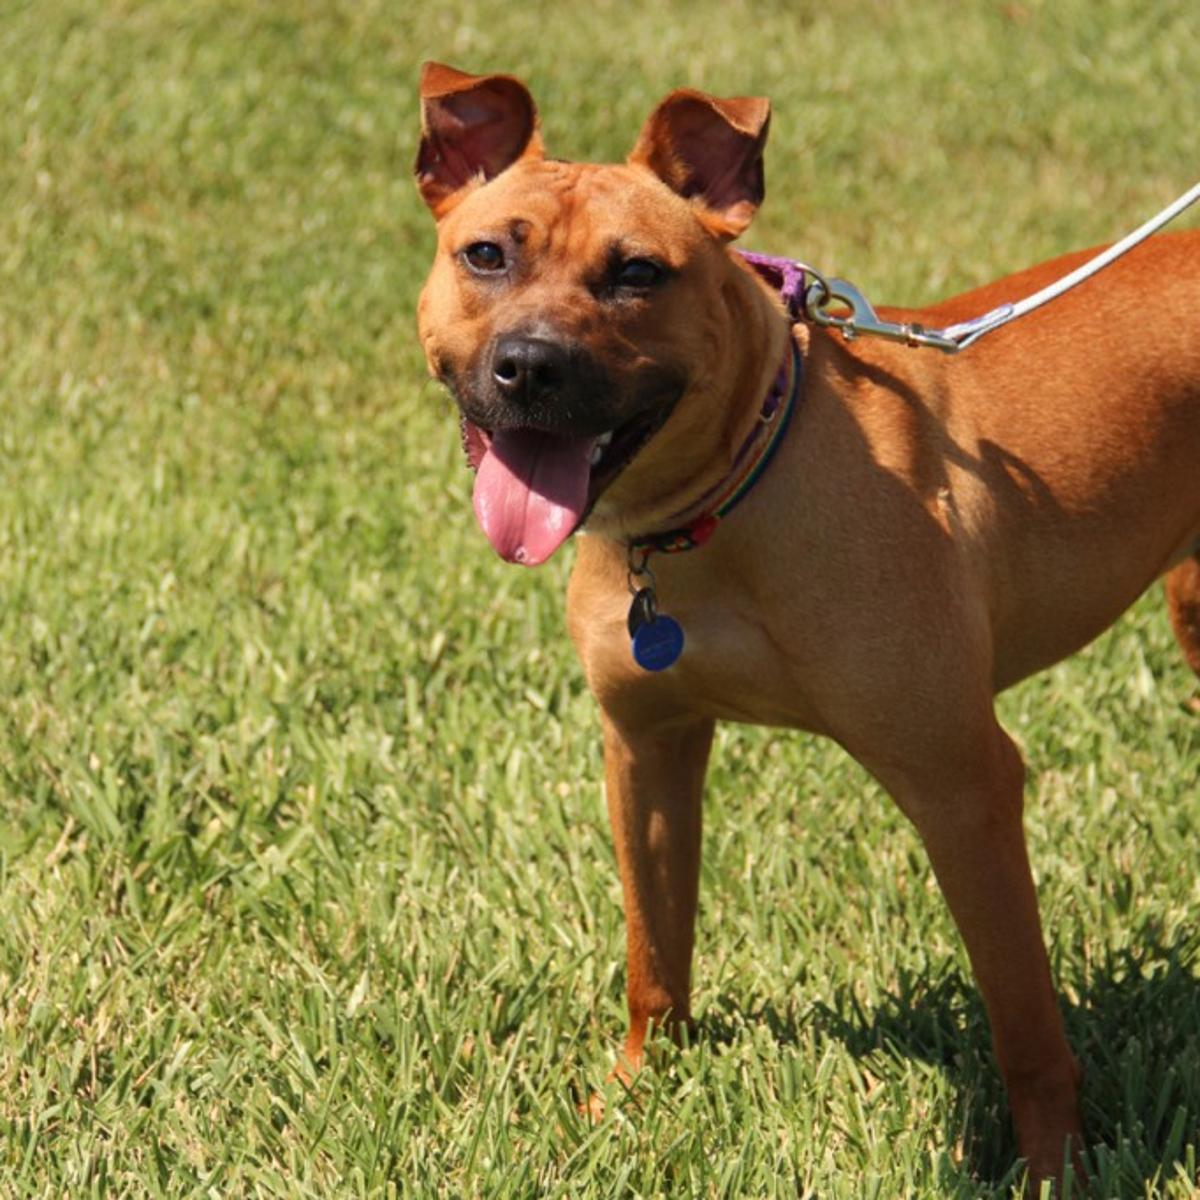 Basenji Pitbull Mix - Meet The Breed